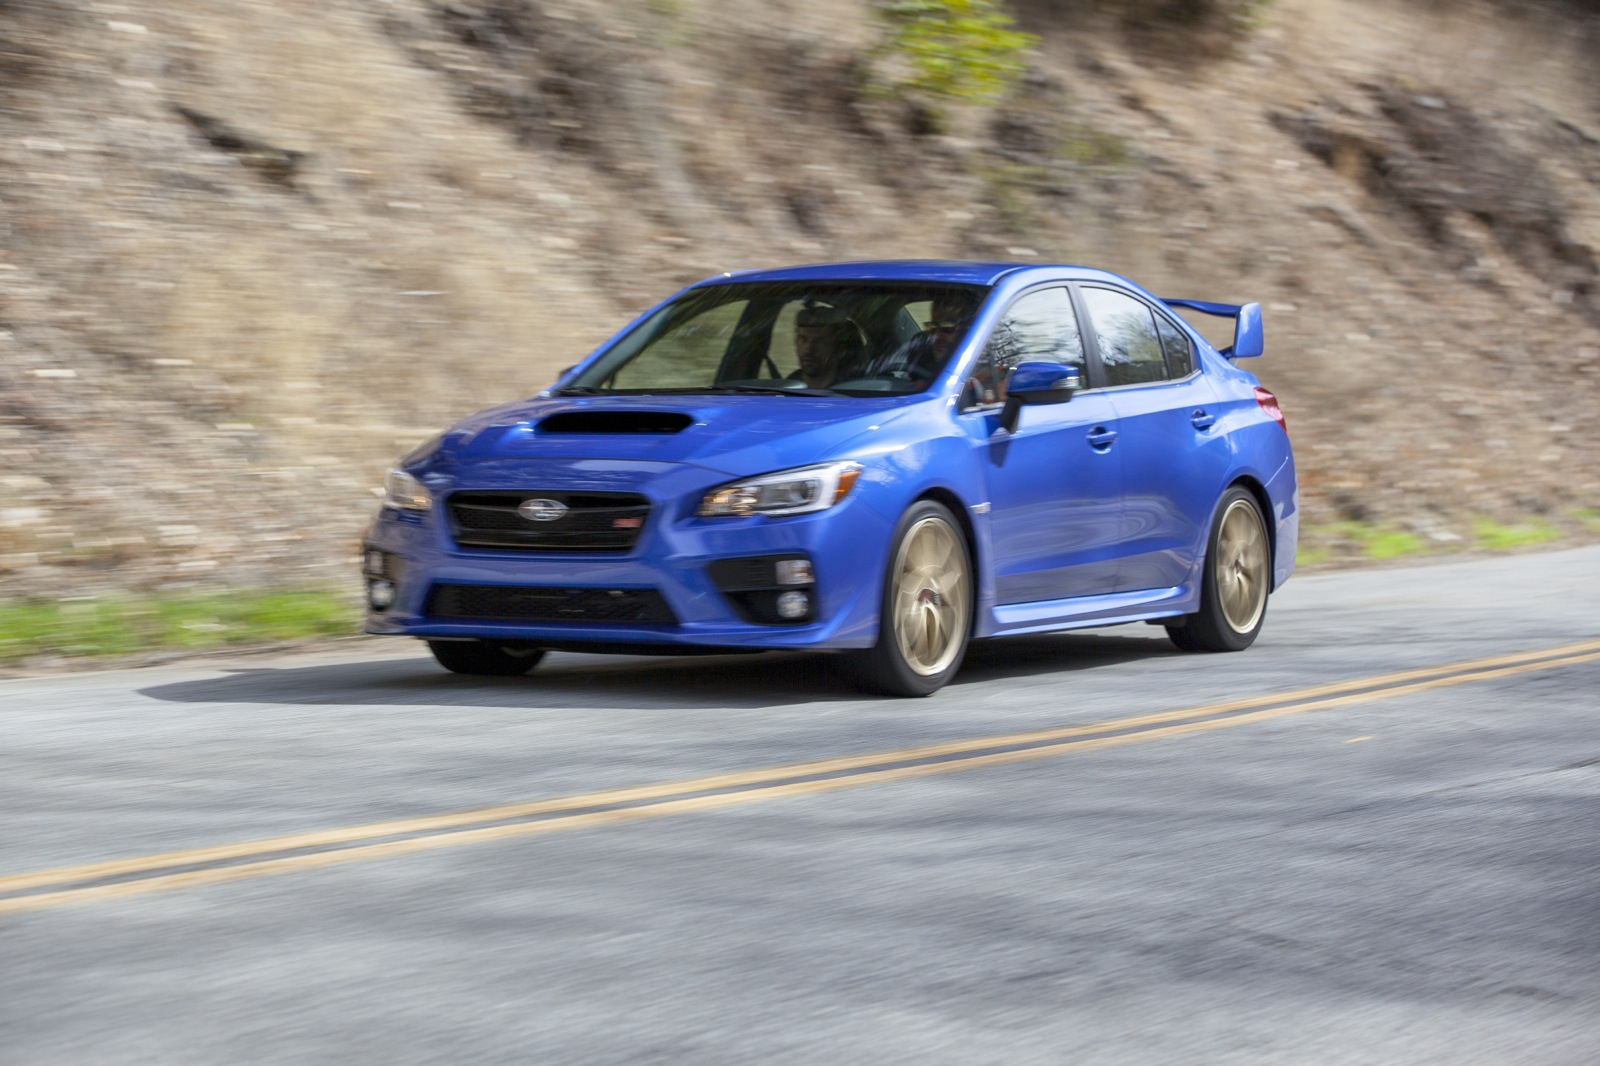 2014 subaru wrx sti review photos caradvice. Black Bedroom Furniture Sets. Home Design Ideas